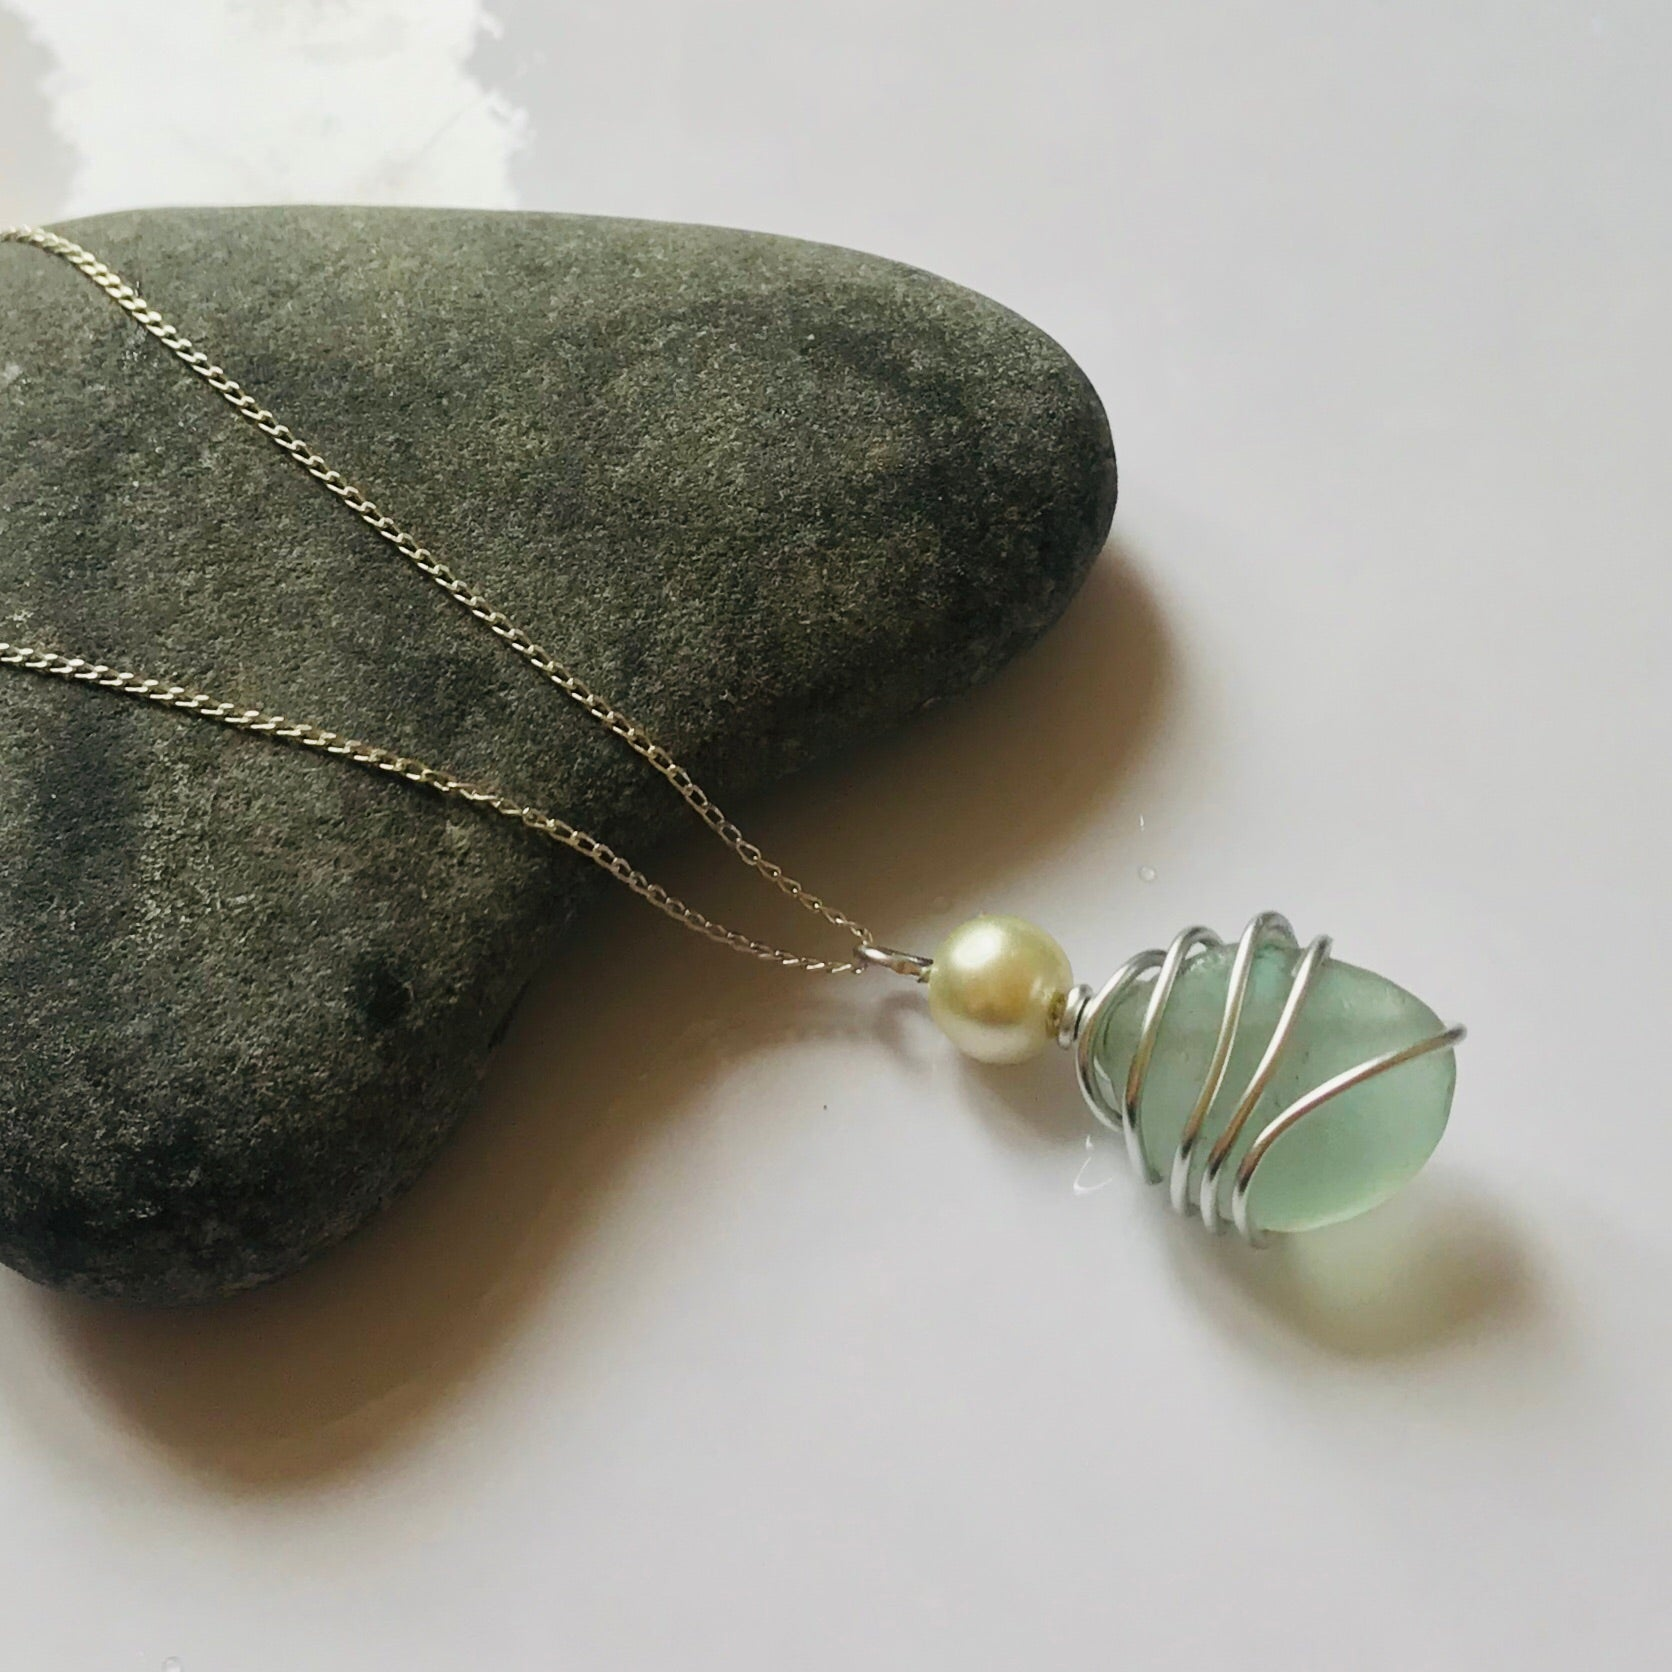 "Lovely Pale Green & Pearl Seaham Sea Glass Pendant On Sterling Silver 20"" chain"